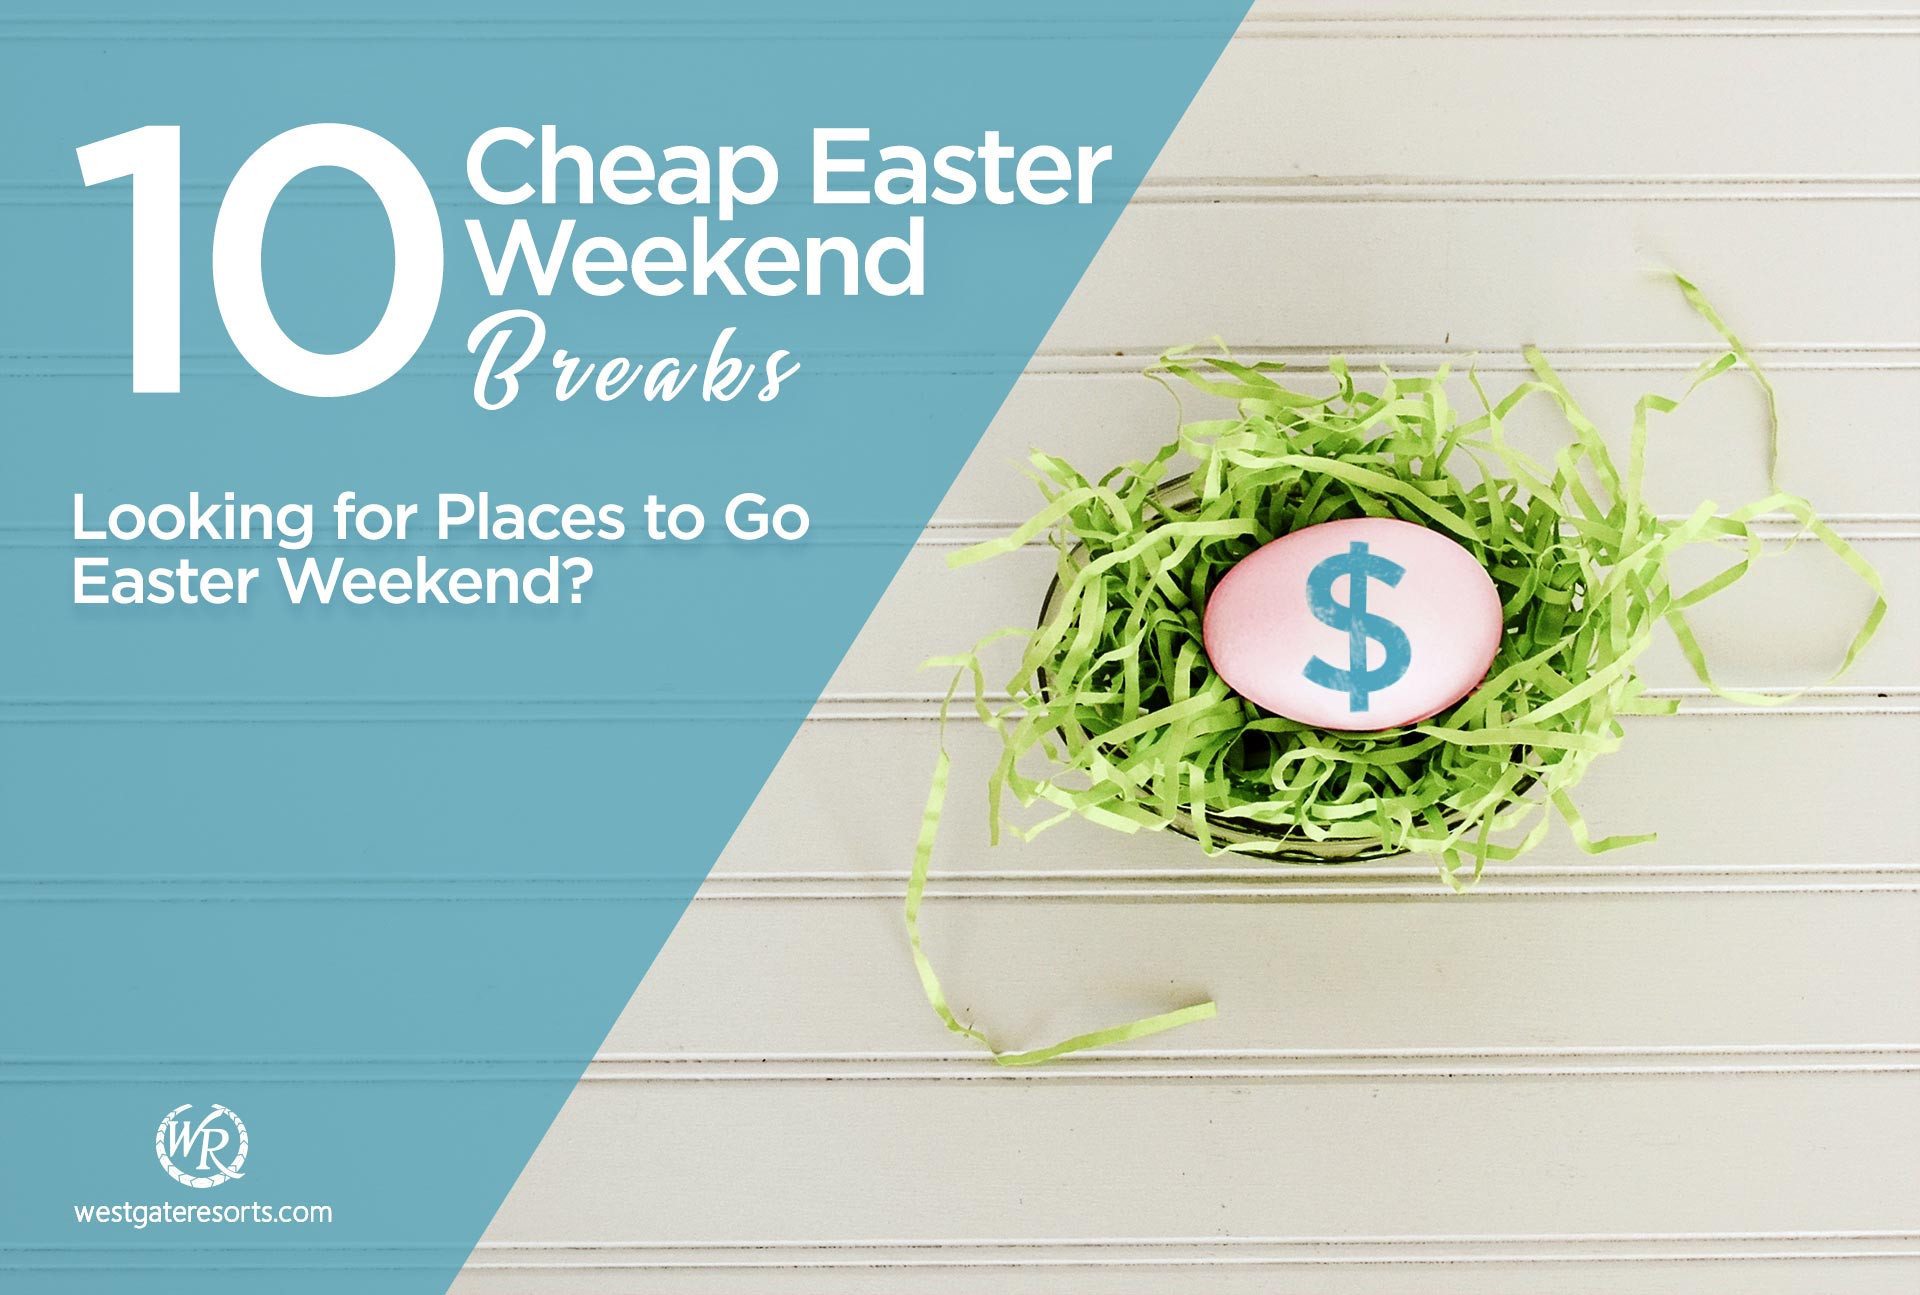 9cdf46b95ec0 Looking for Places to Go Easter Weekend  10 Cheap Easter Weekend ...